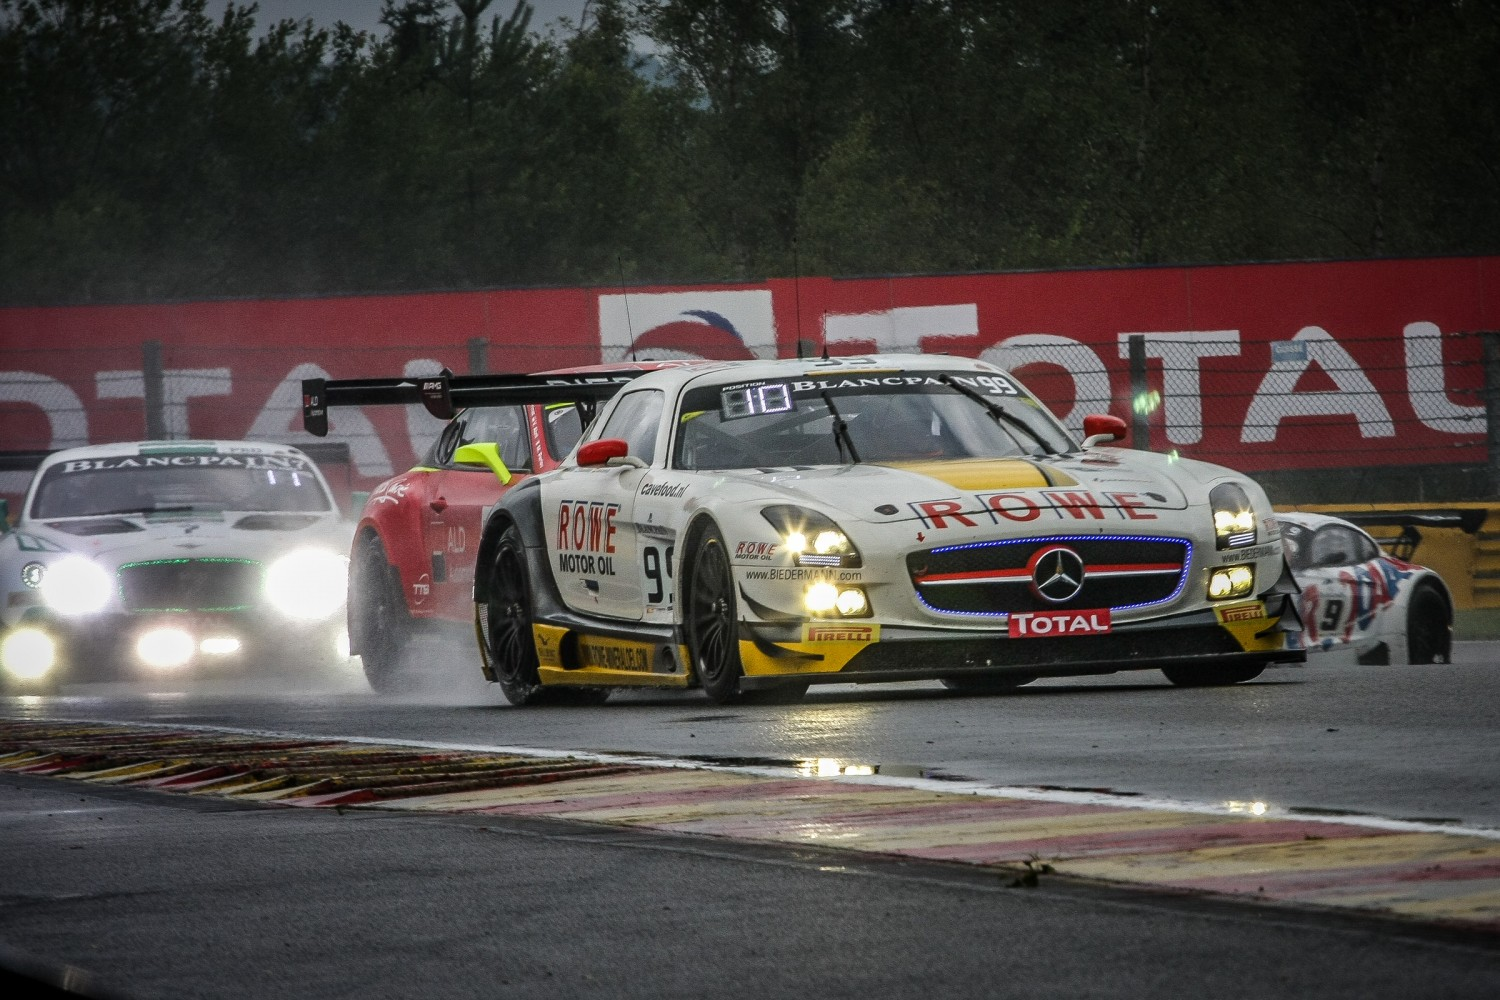 #99 Rowe Racing SLS take full points after six hours